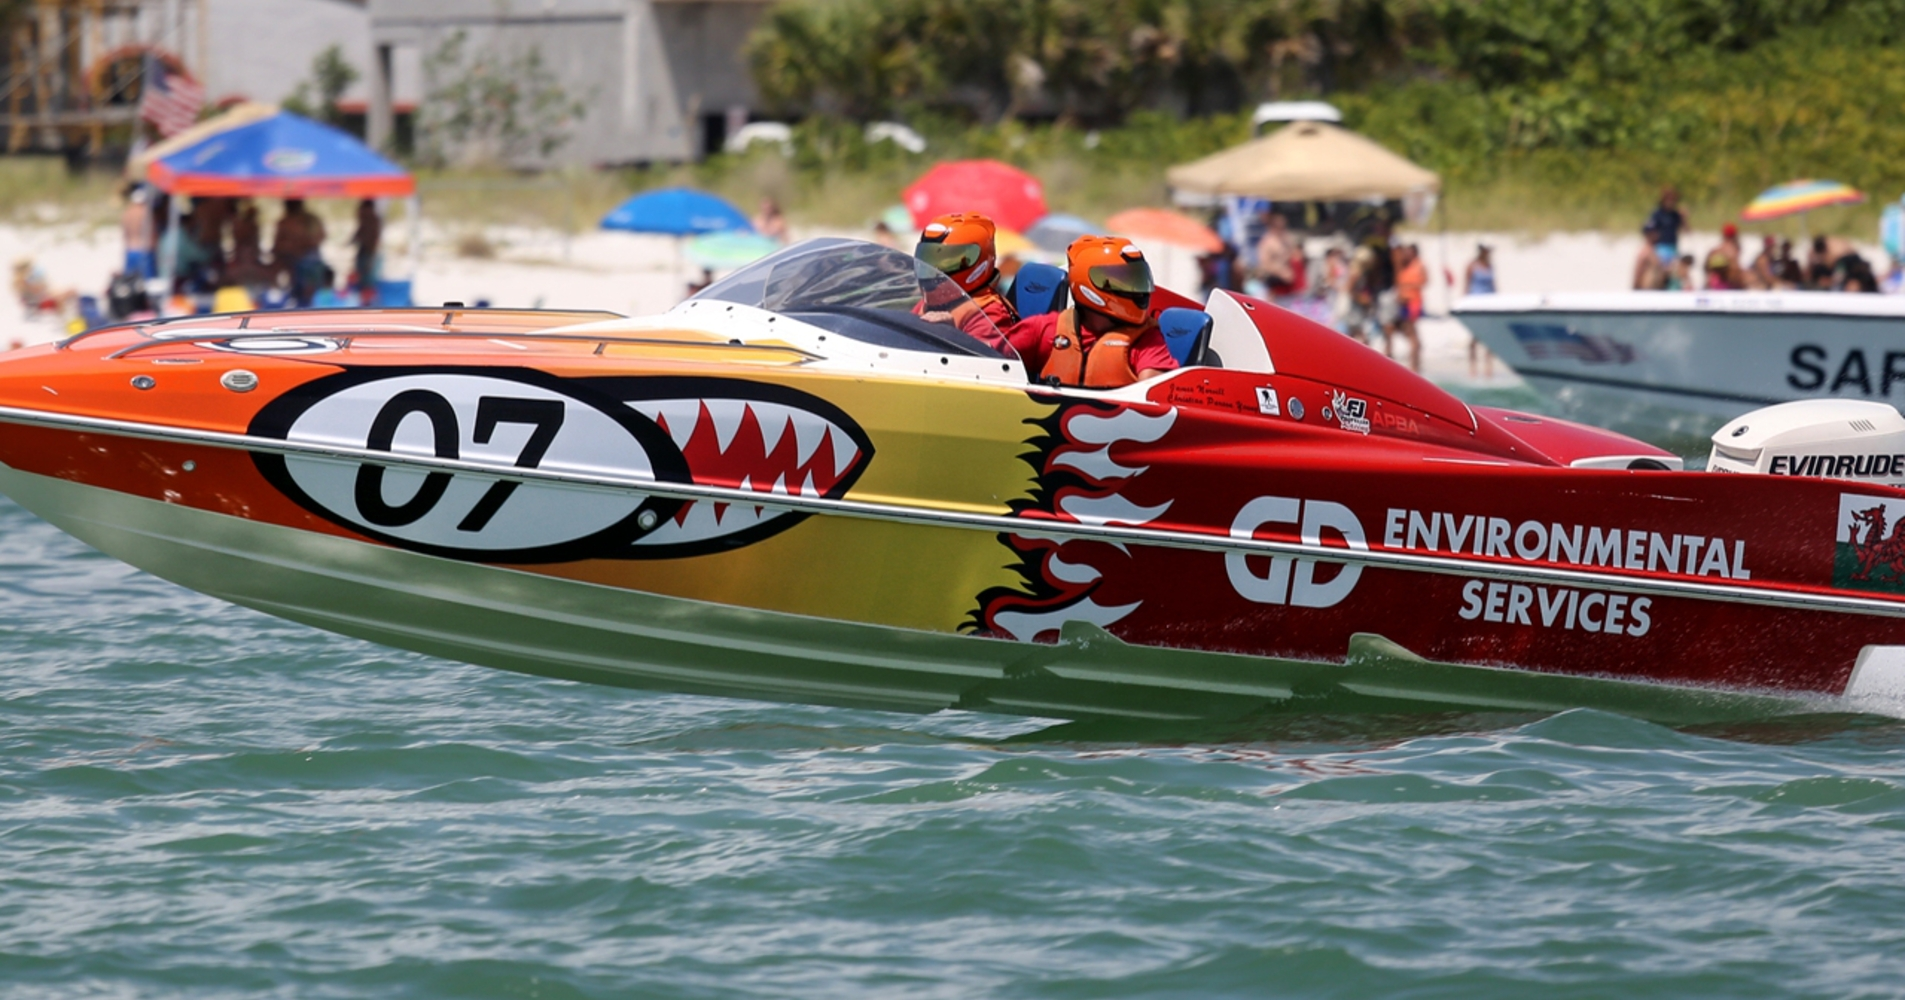 Expanded televised coverage for powerboat racing in Sarasota - P1 ...